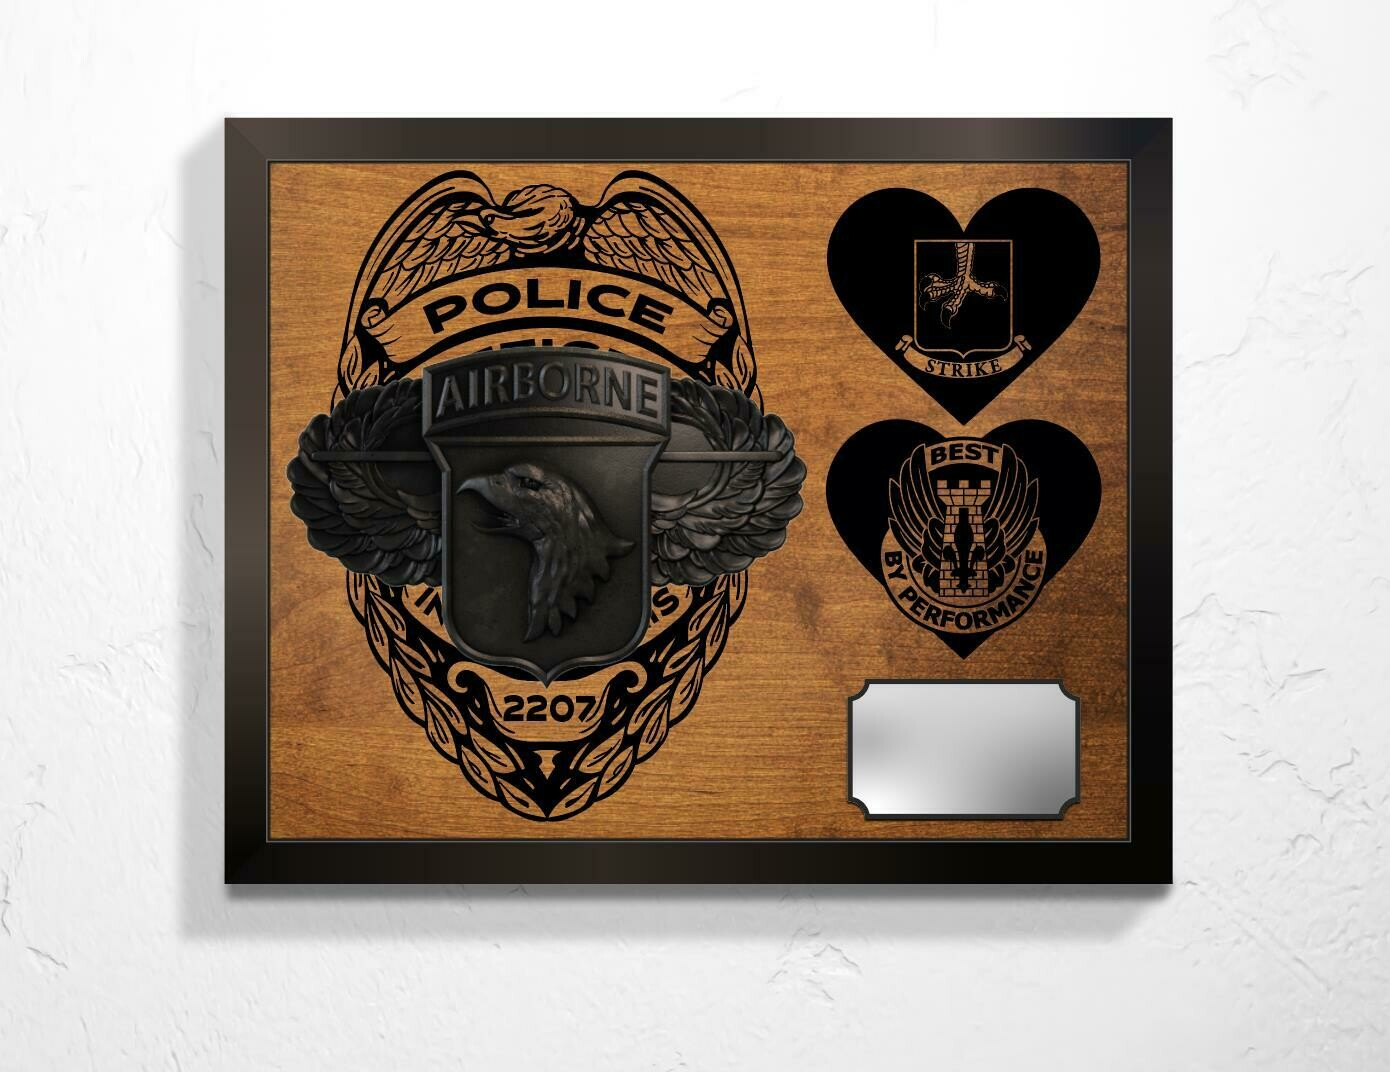 "Police/101st Airborne Retirement Plaque -  20.5"" x 16.5"""